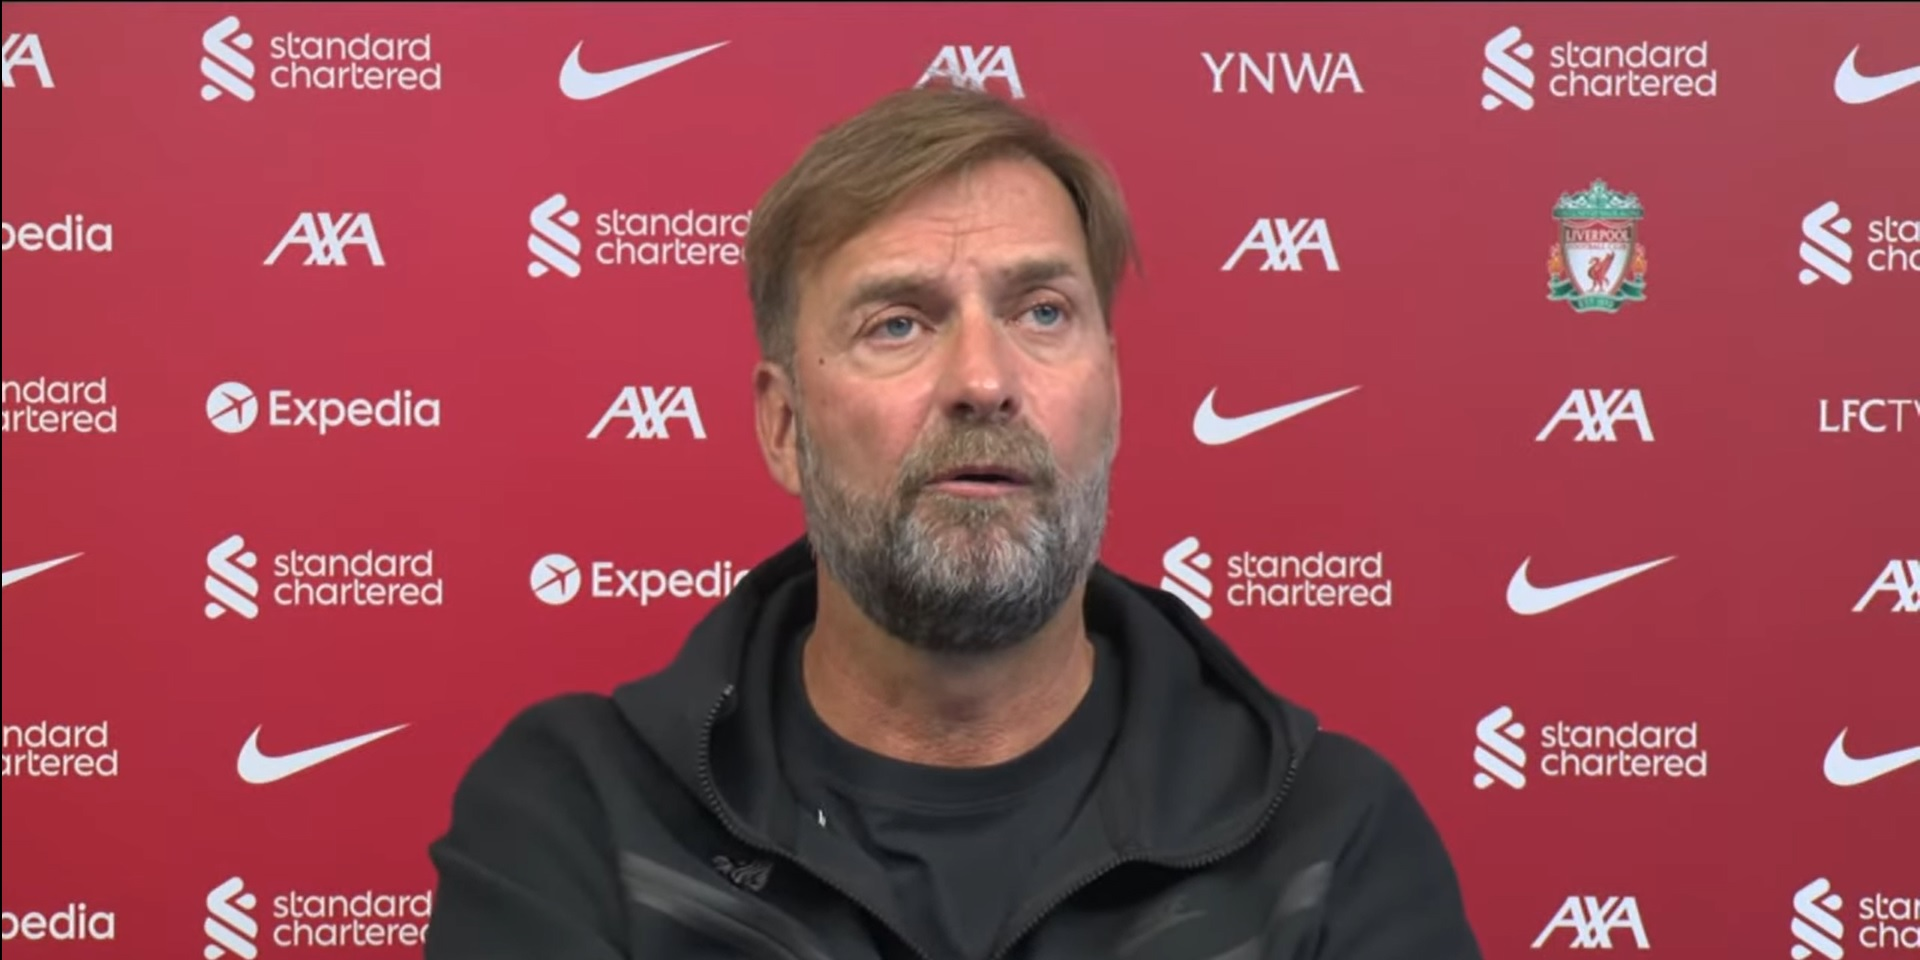 Klopp shrugs off Man City's spending spree in nod to Liverpool success: 'We will not use it as an excuse'